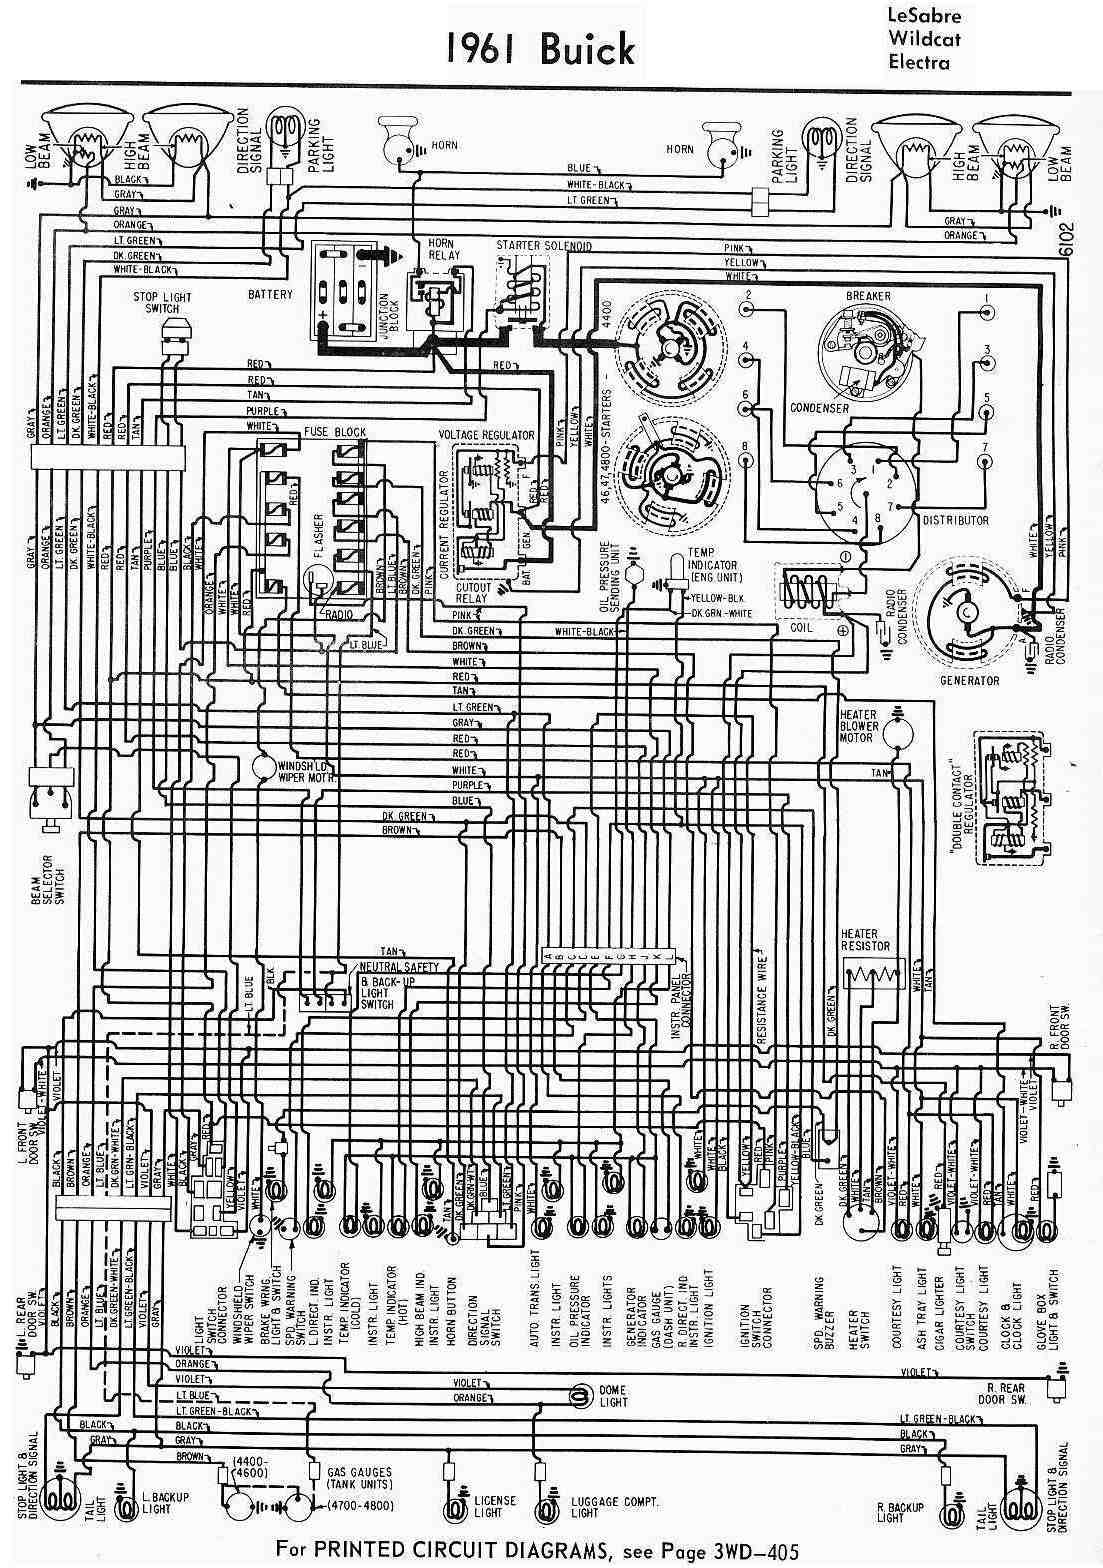 medium resolution of 1961 chrysler wiring diagram wiring diagrams posts car diagrams 1961 cadillac wiring diagram 1967 plymouth